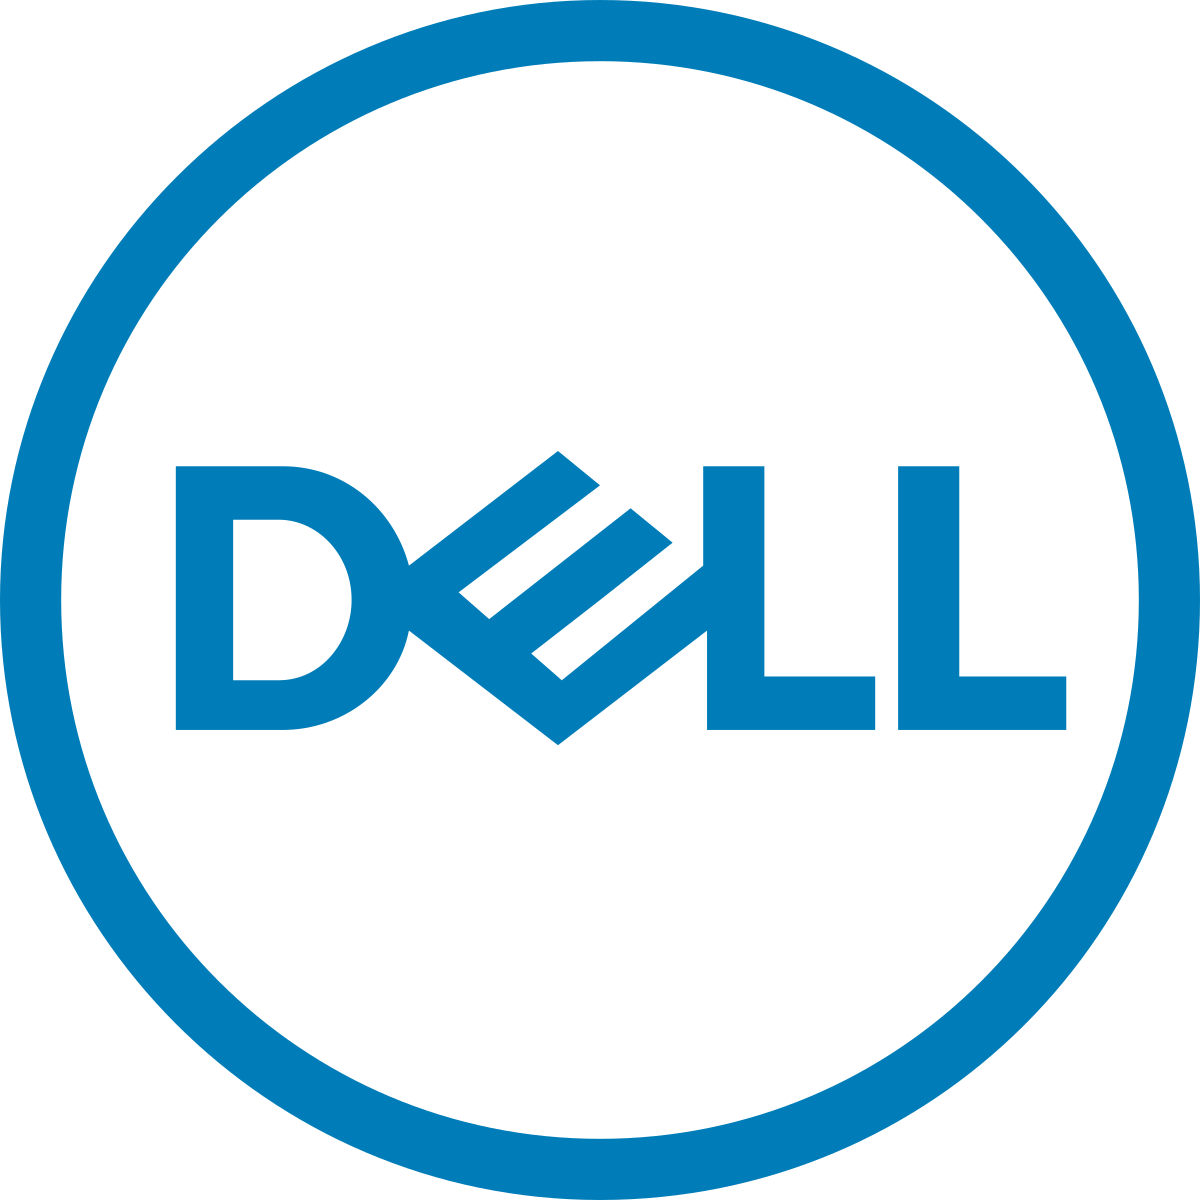 Dell International Services India Private Limited logo